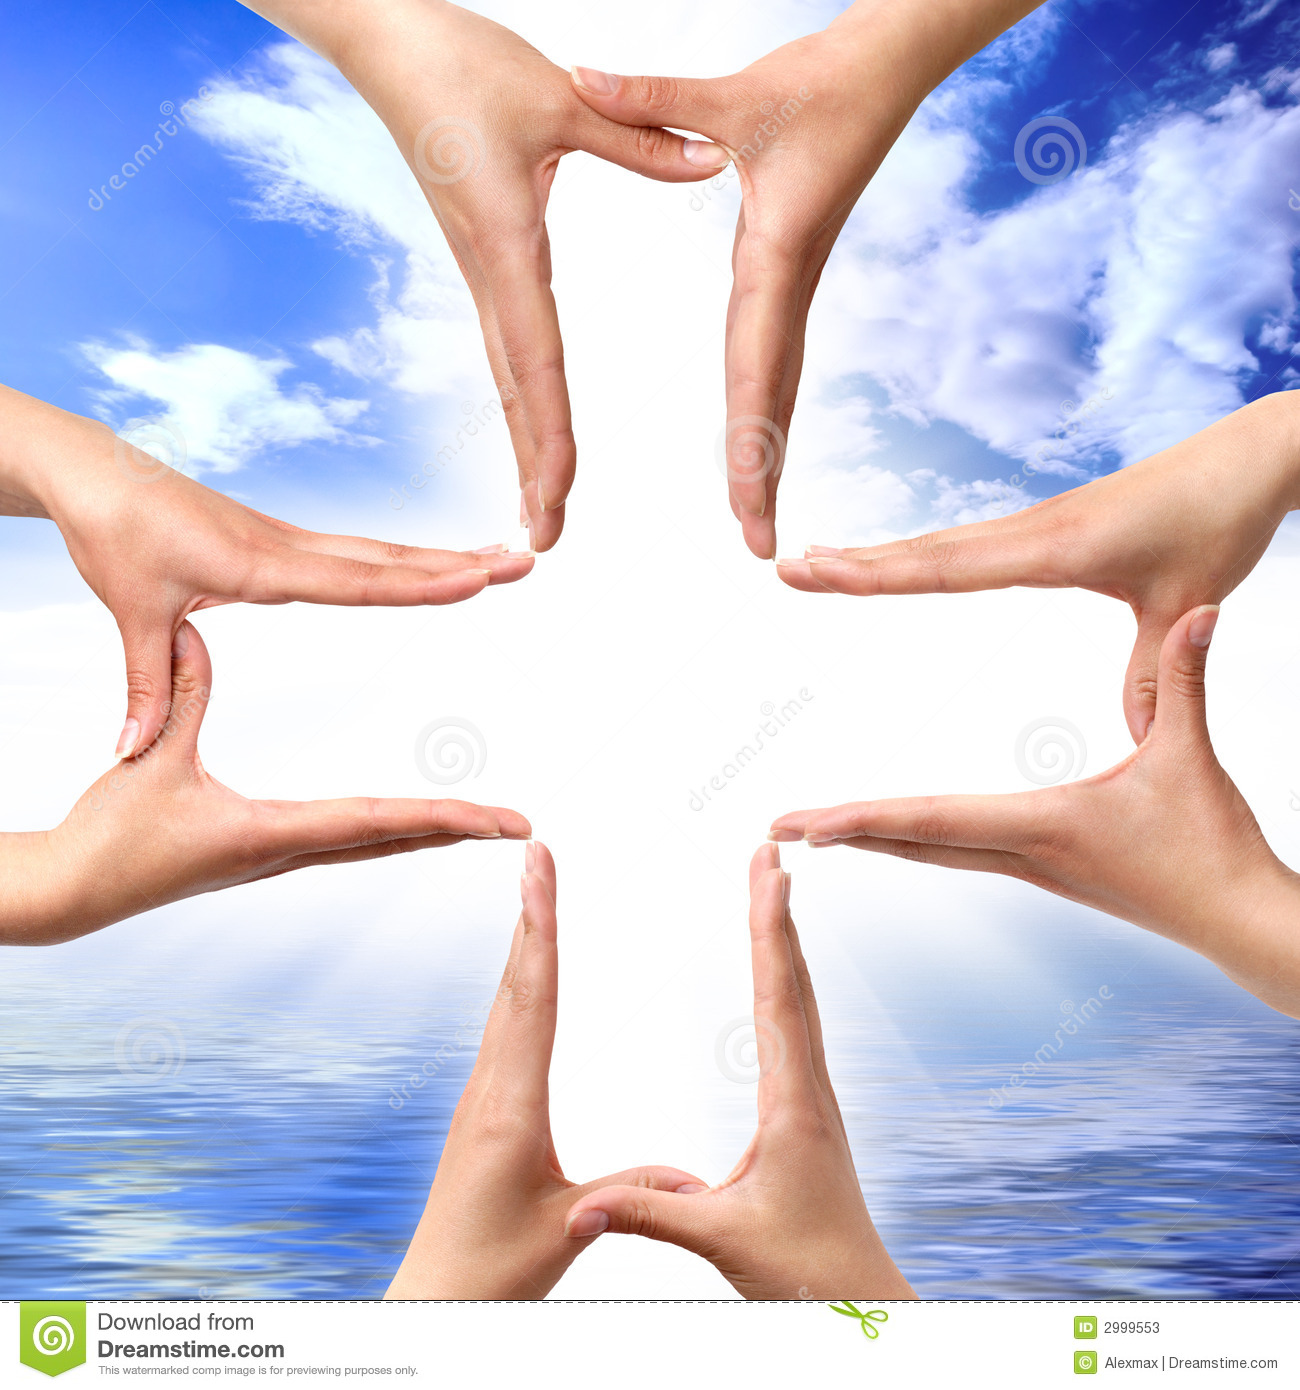 Conceptual cross symbol made from hands over blue seascape background.